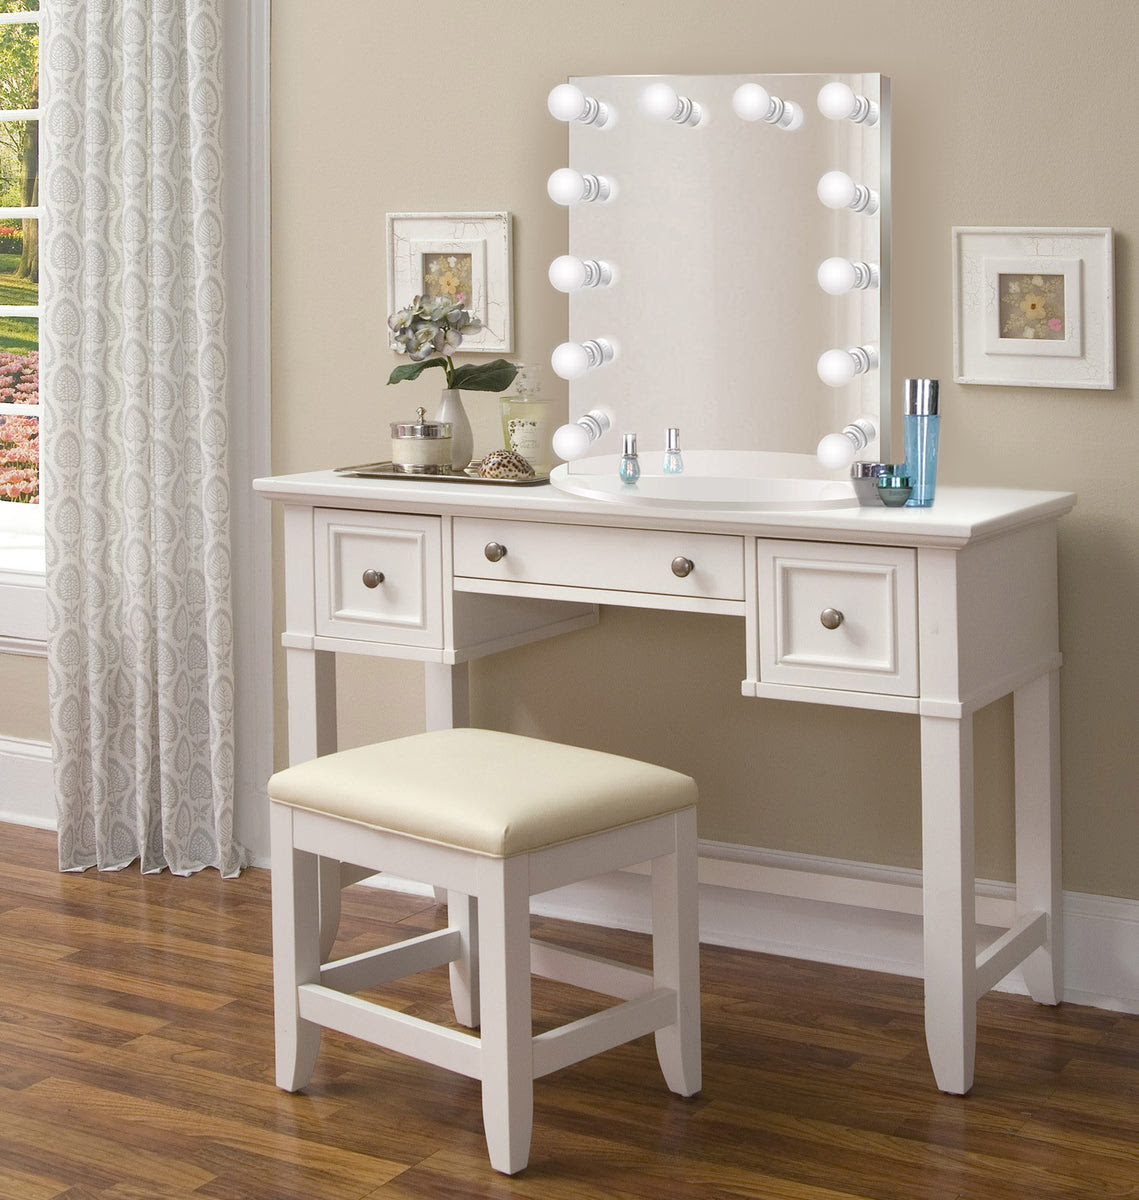 "Nashville 36"" White Makeup Vanity Table and Chair - Glam ..."